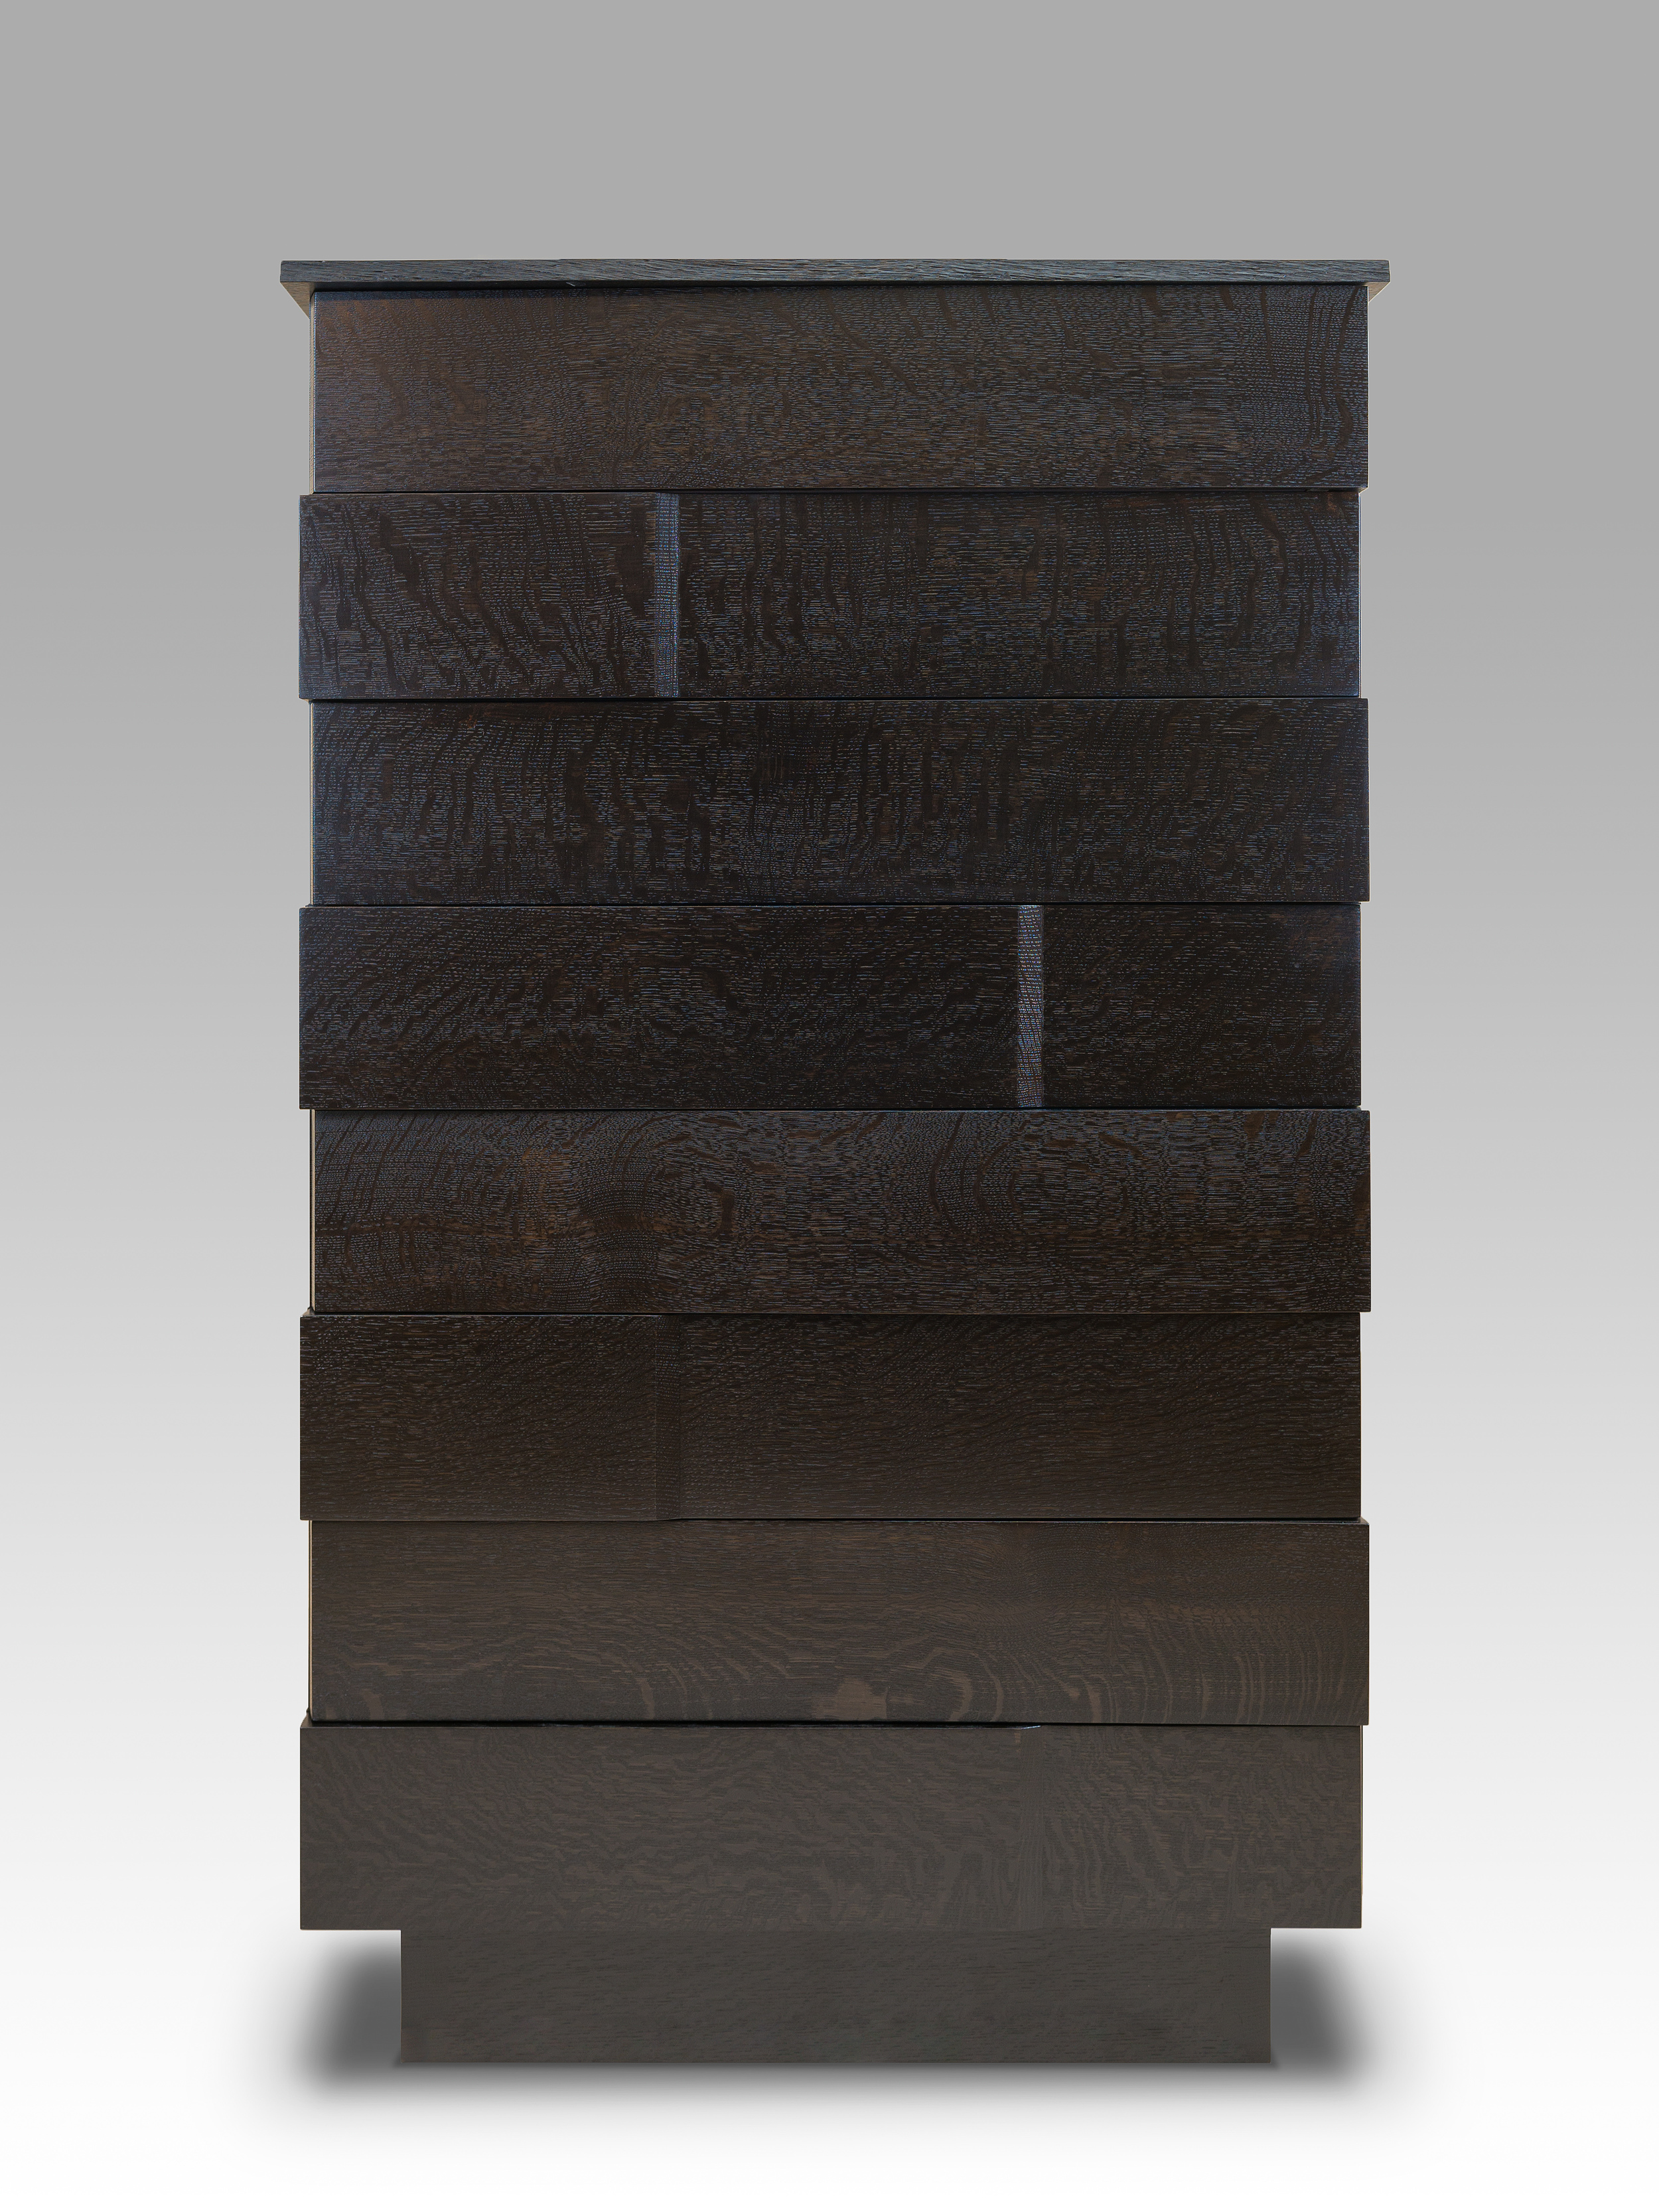 Ooku3 Dresser - 2 sections stacked